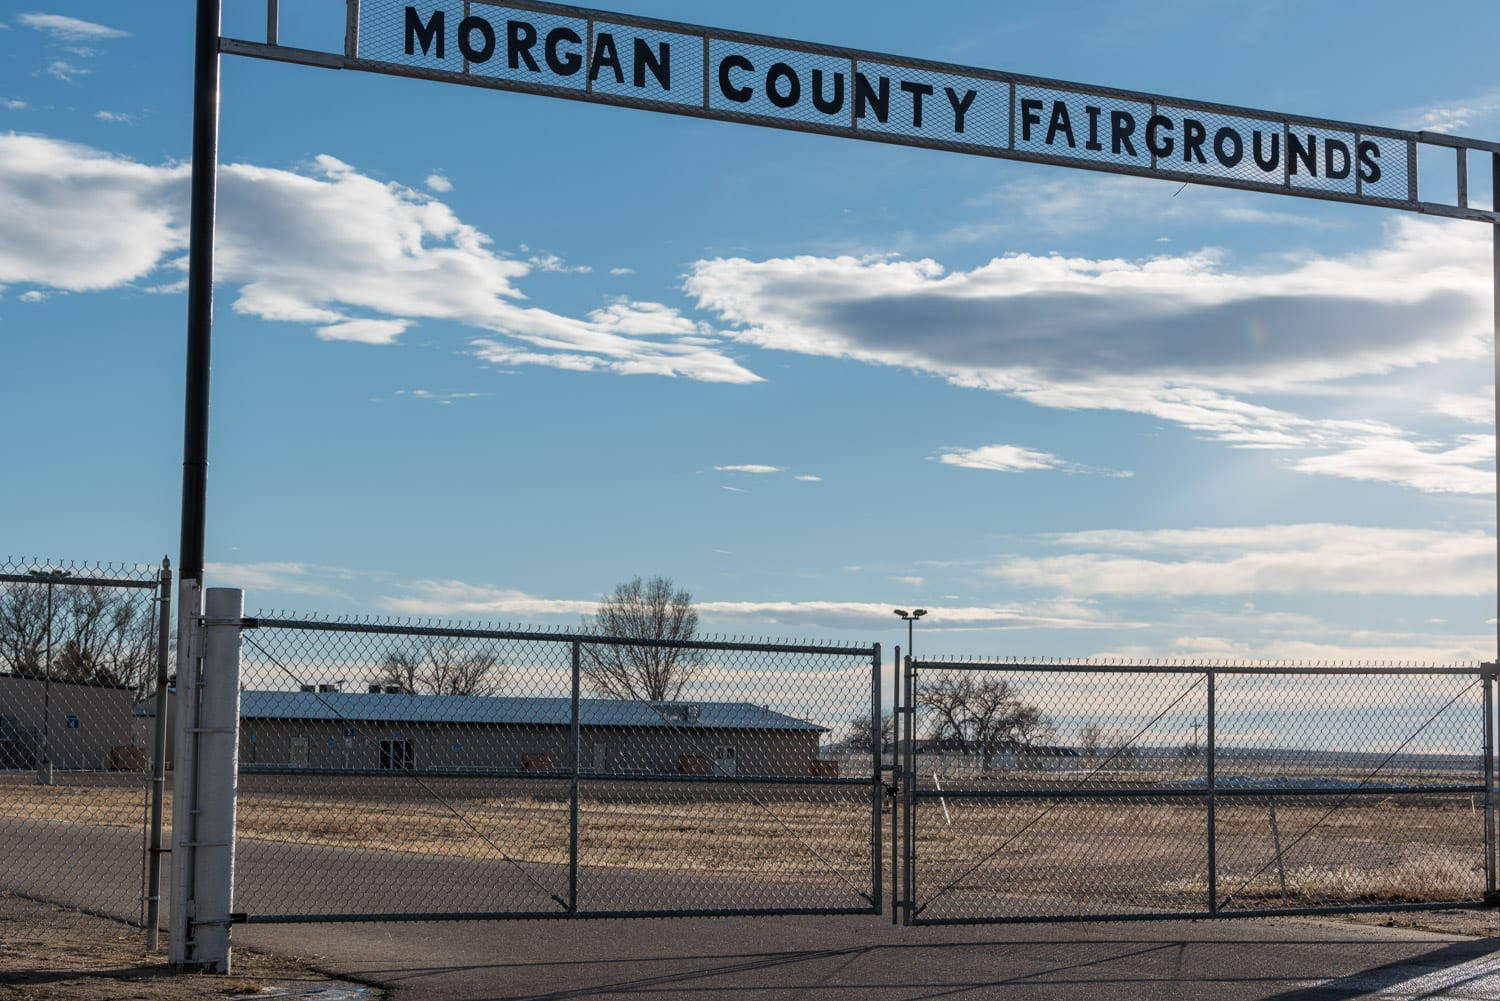 image of Morgan County Fairgrounds